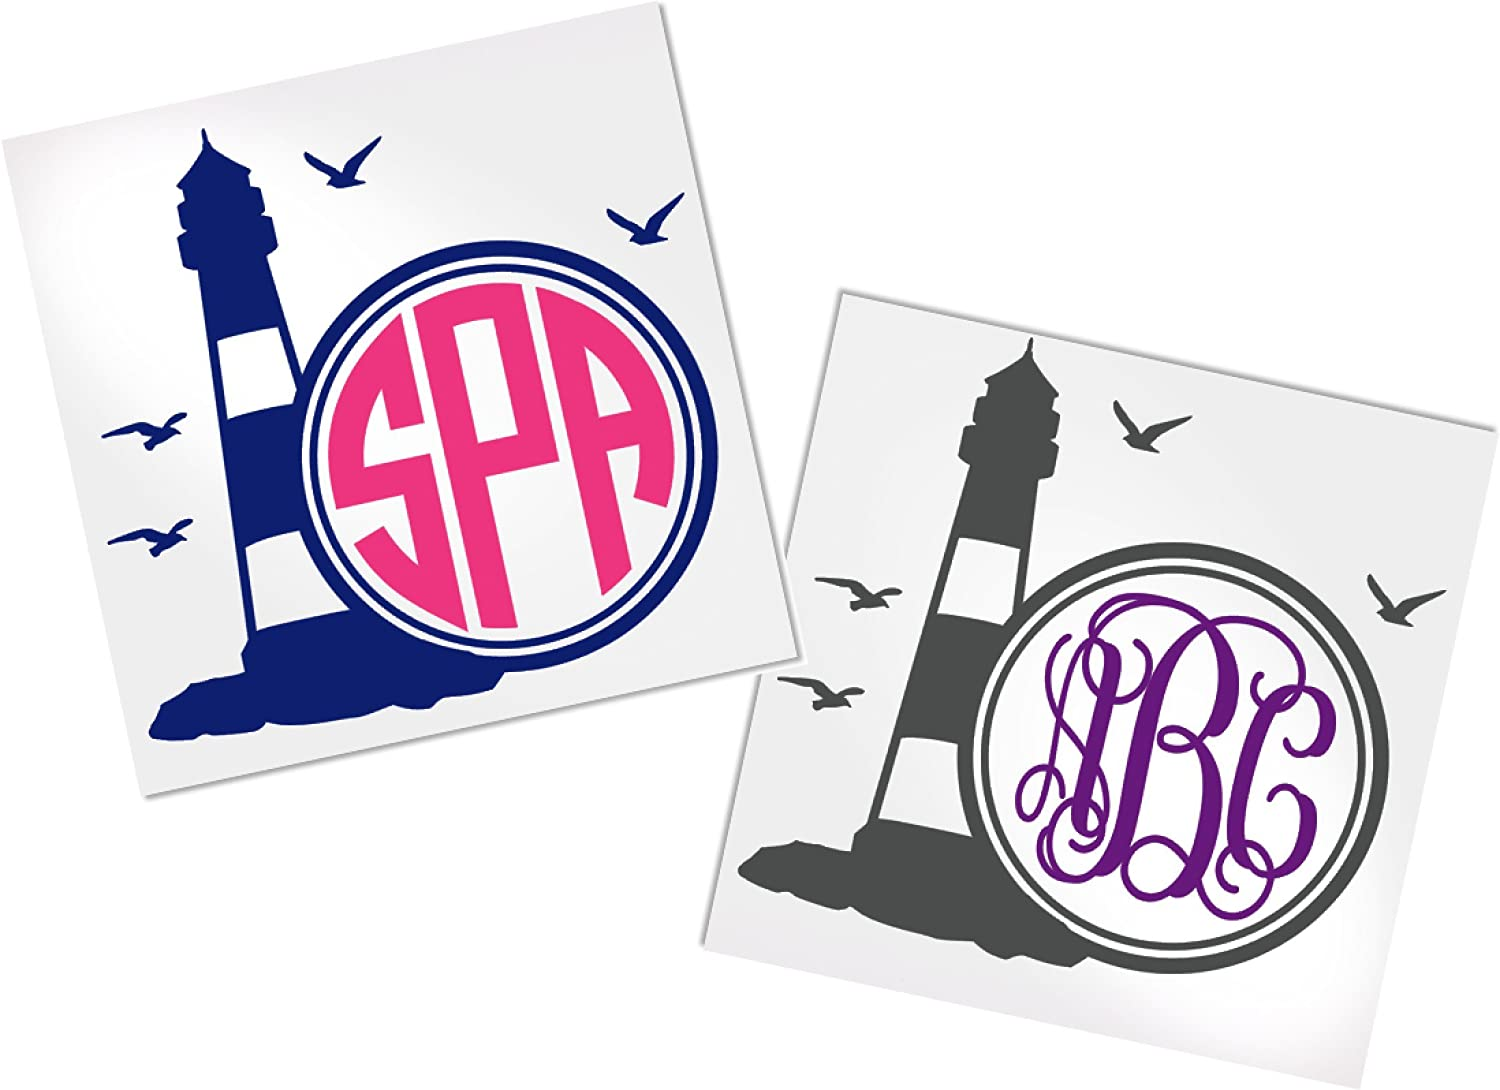 Lighthouse Decal Stickers for Yeti, Car or Laptop - Your Choice of Color & Style | Decals by ADavis